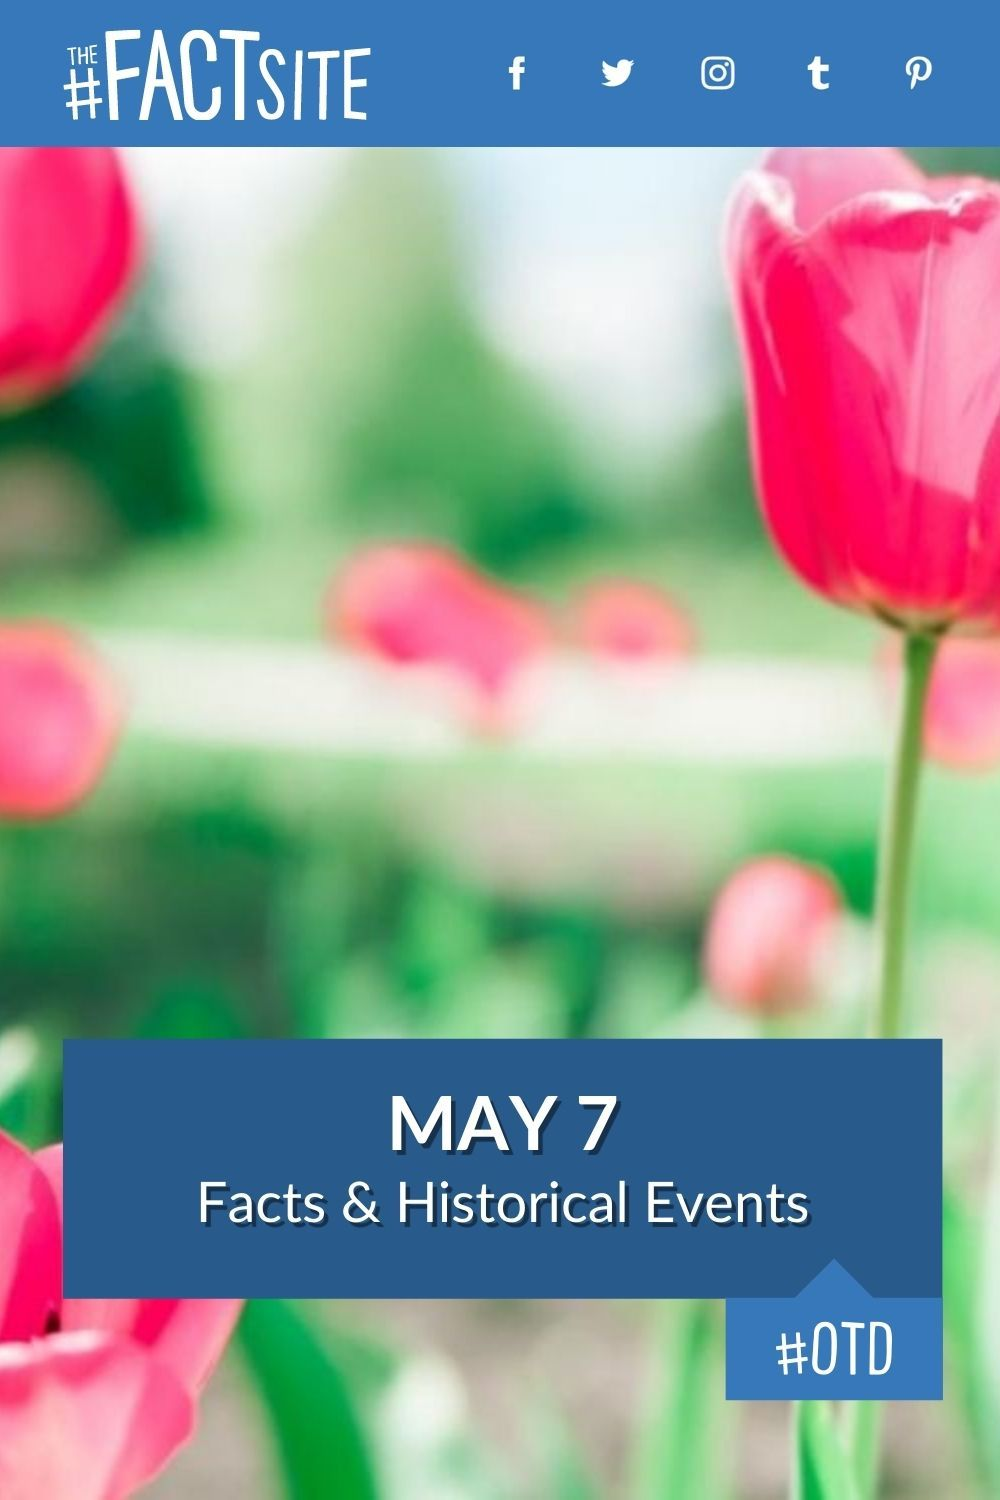 Facts & Historic Events That Happened on May 7